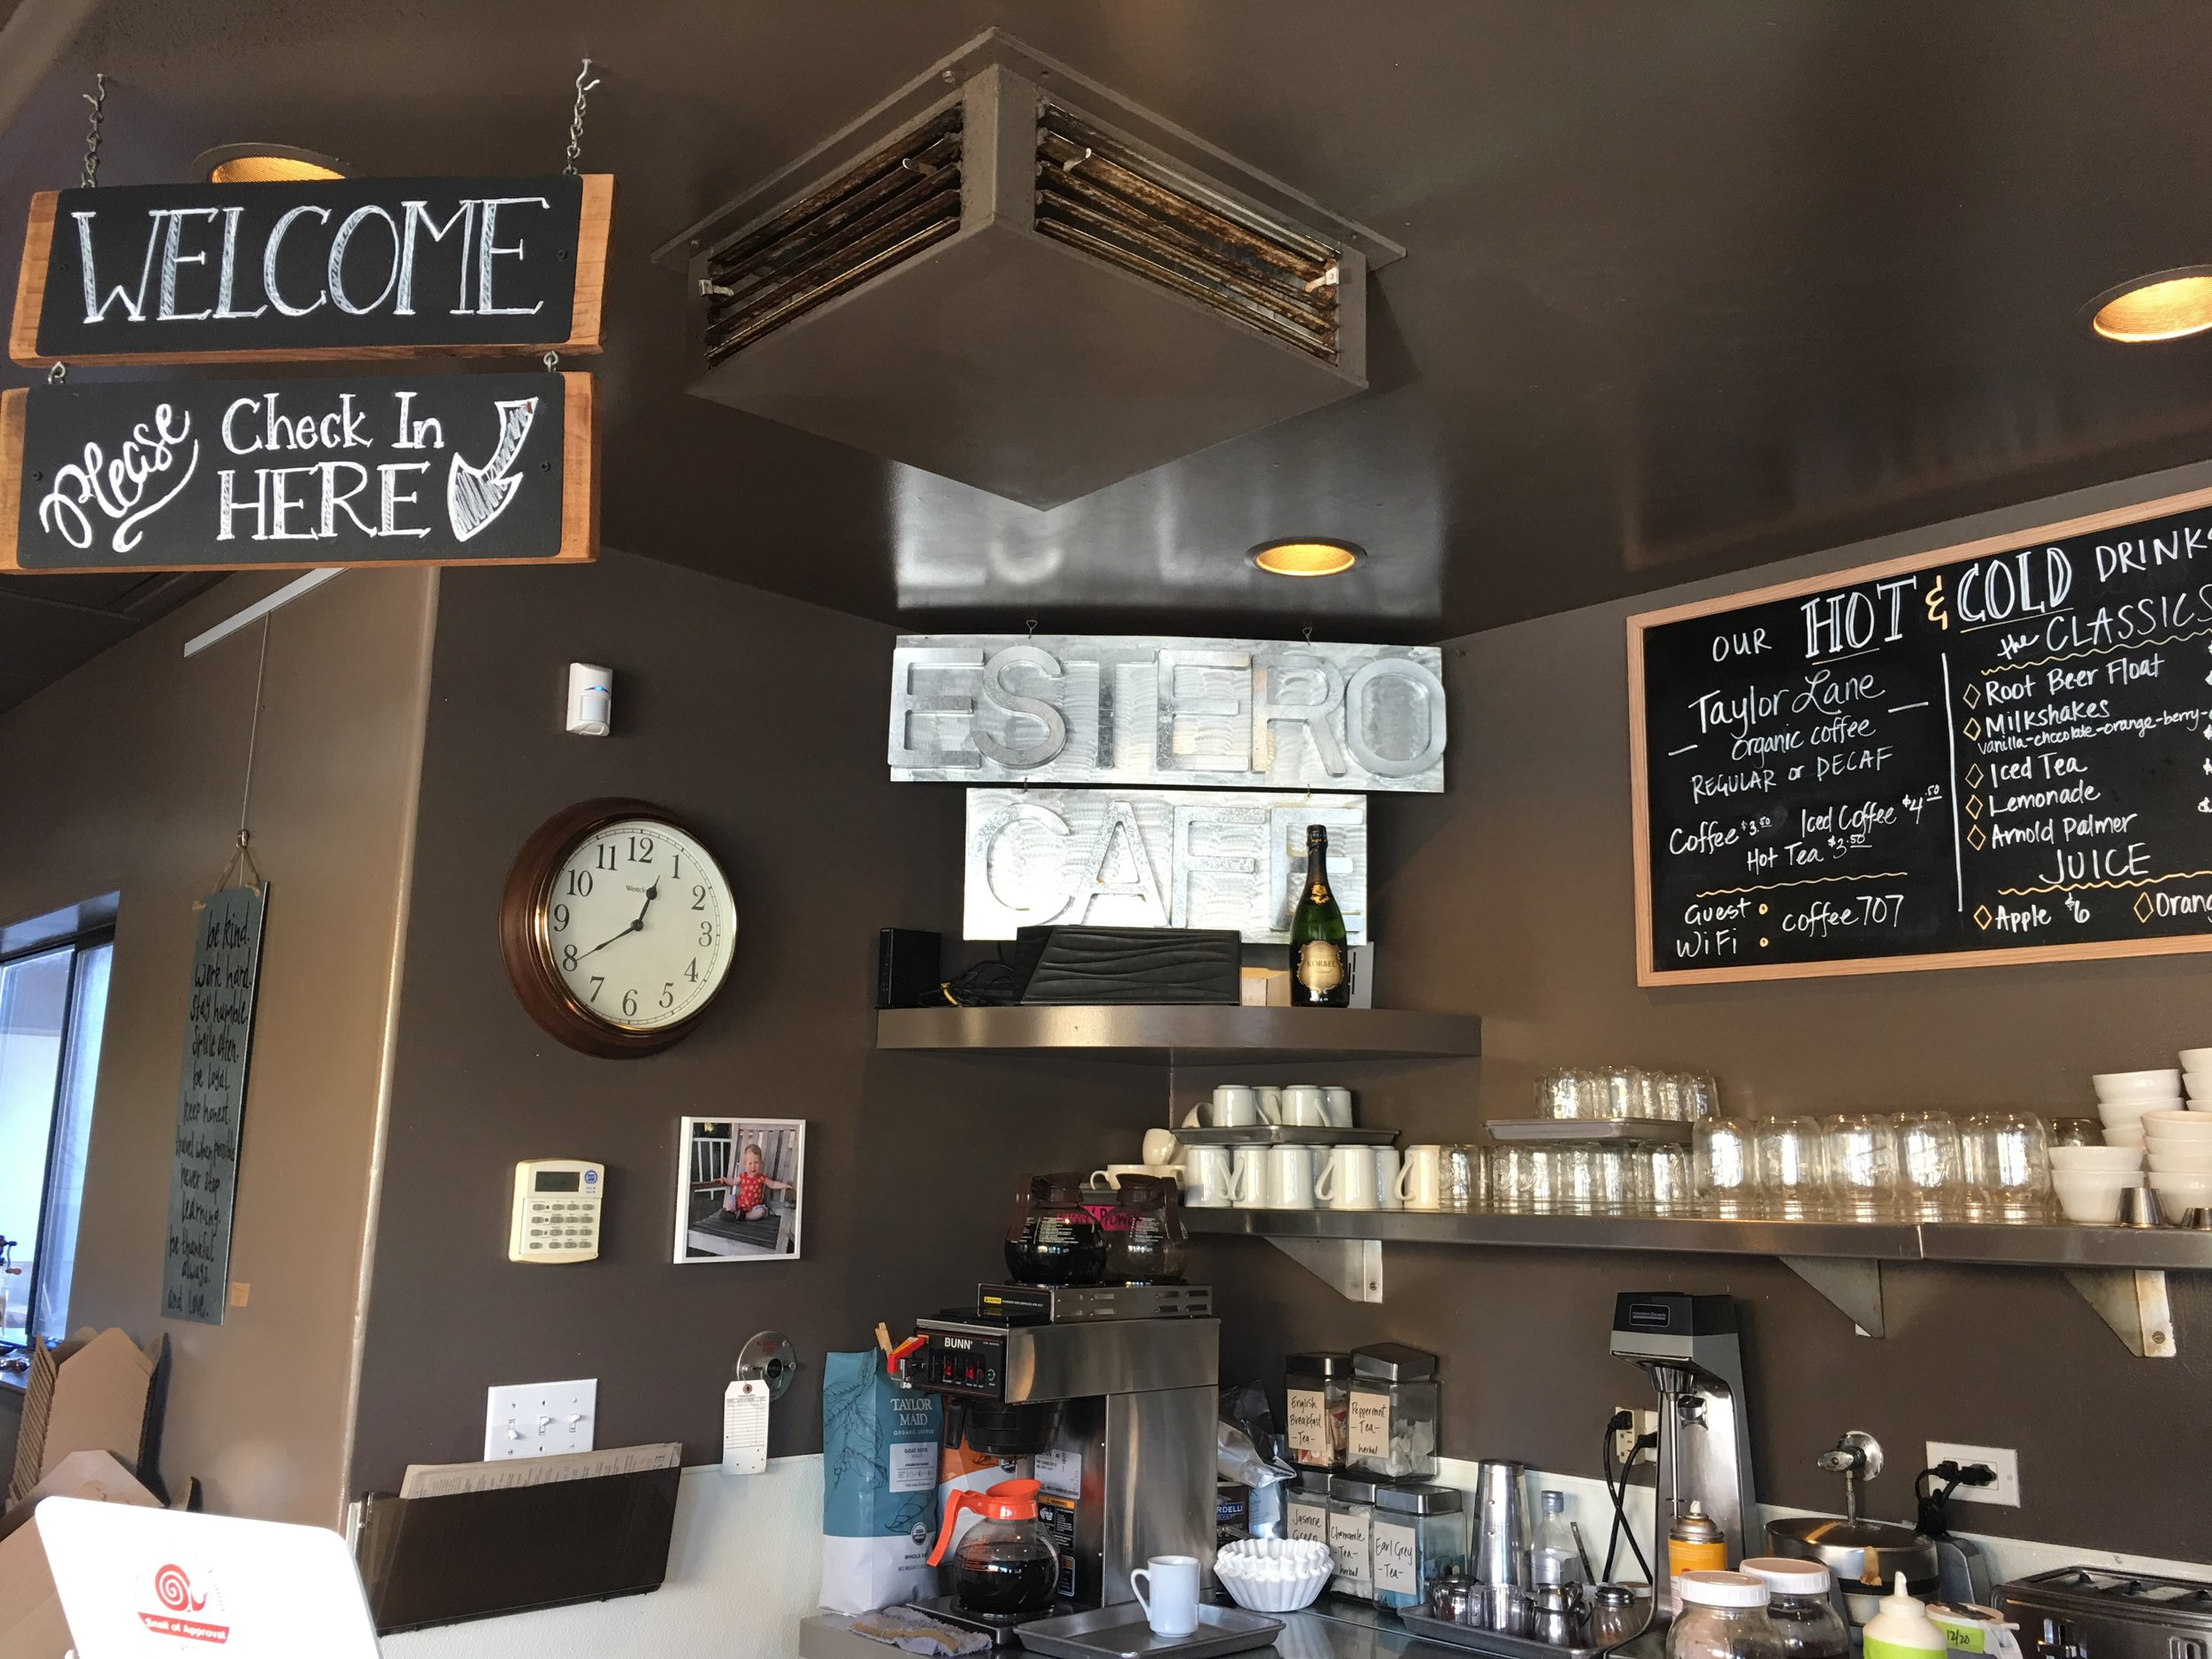 Review of Estero Cafe in Valley Ford, California